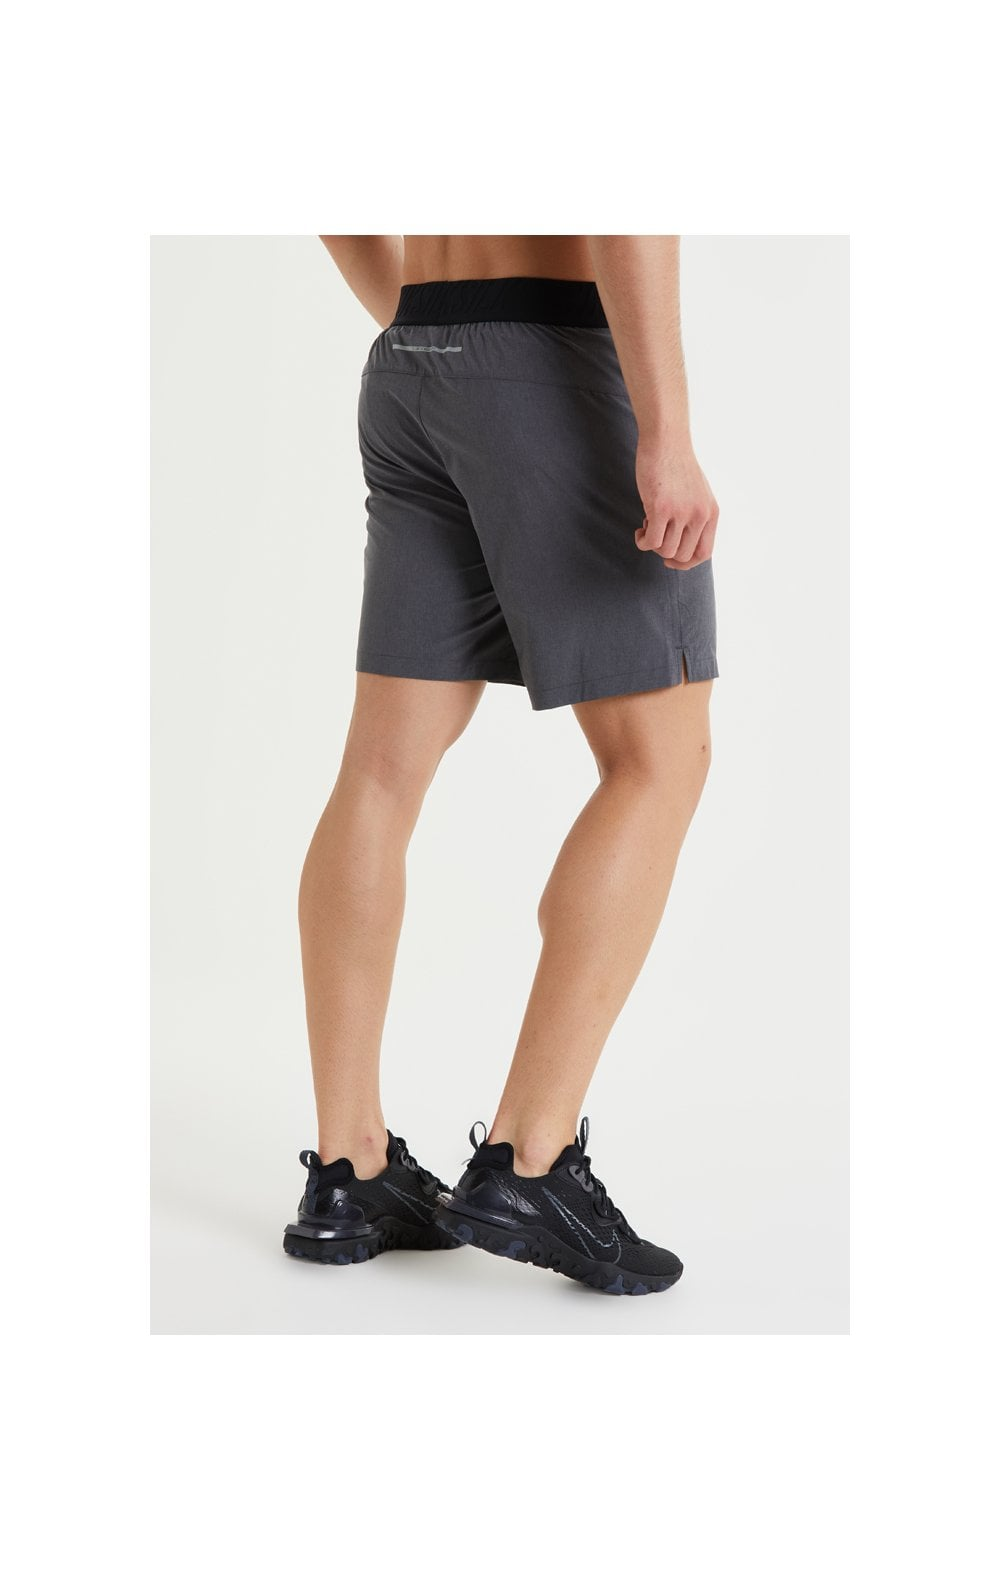 Load image into Gallery viewer, SikSilk Pressure Woven Long Shorts - Charcoal Marl (4)